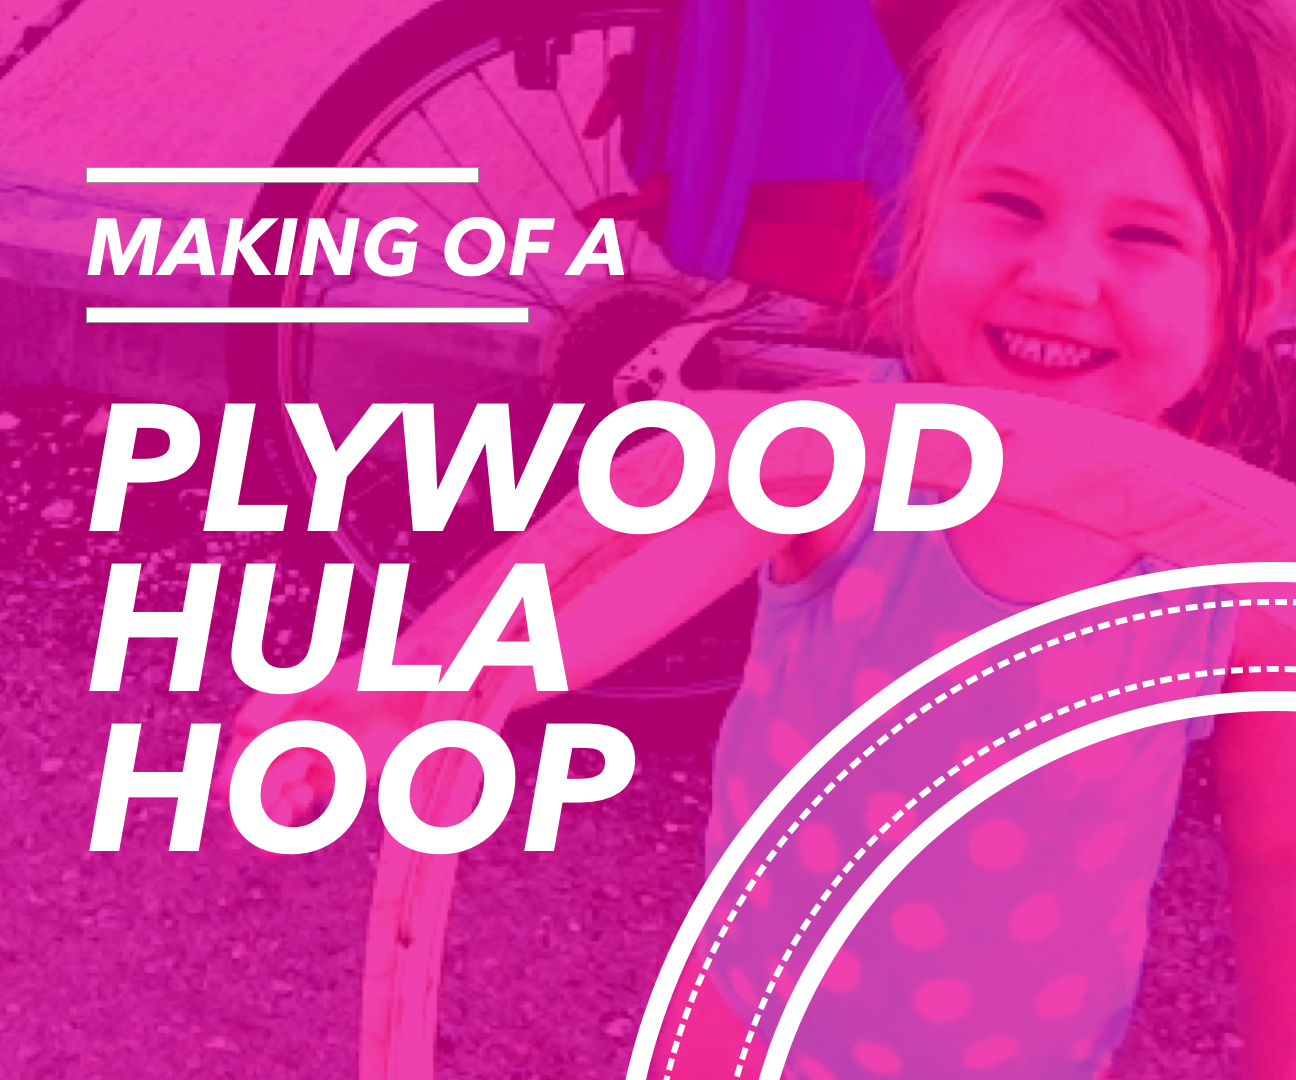 How to Make a Wooden Hula Hoop!